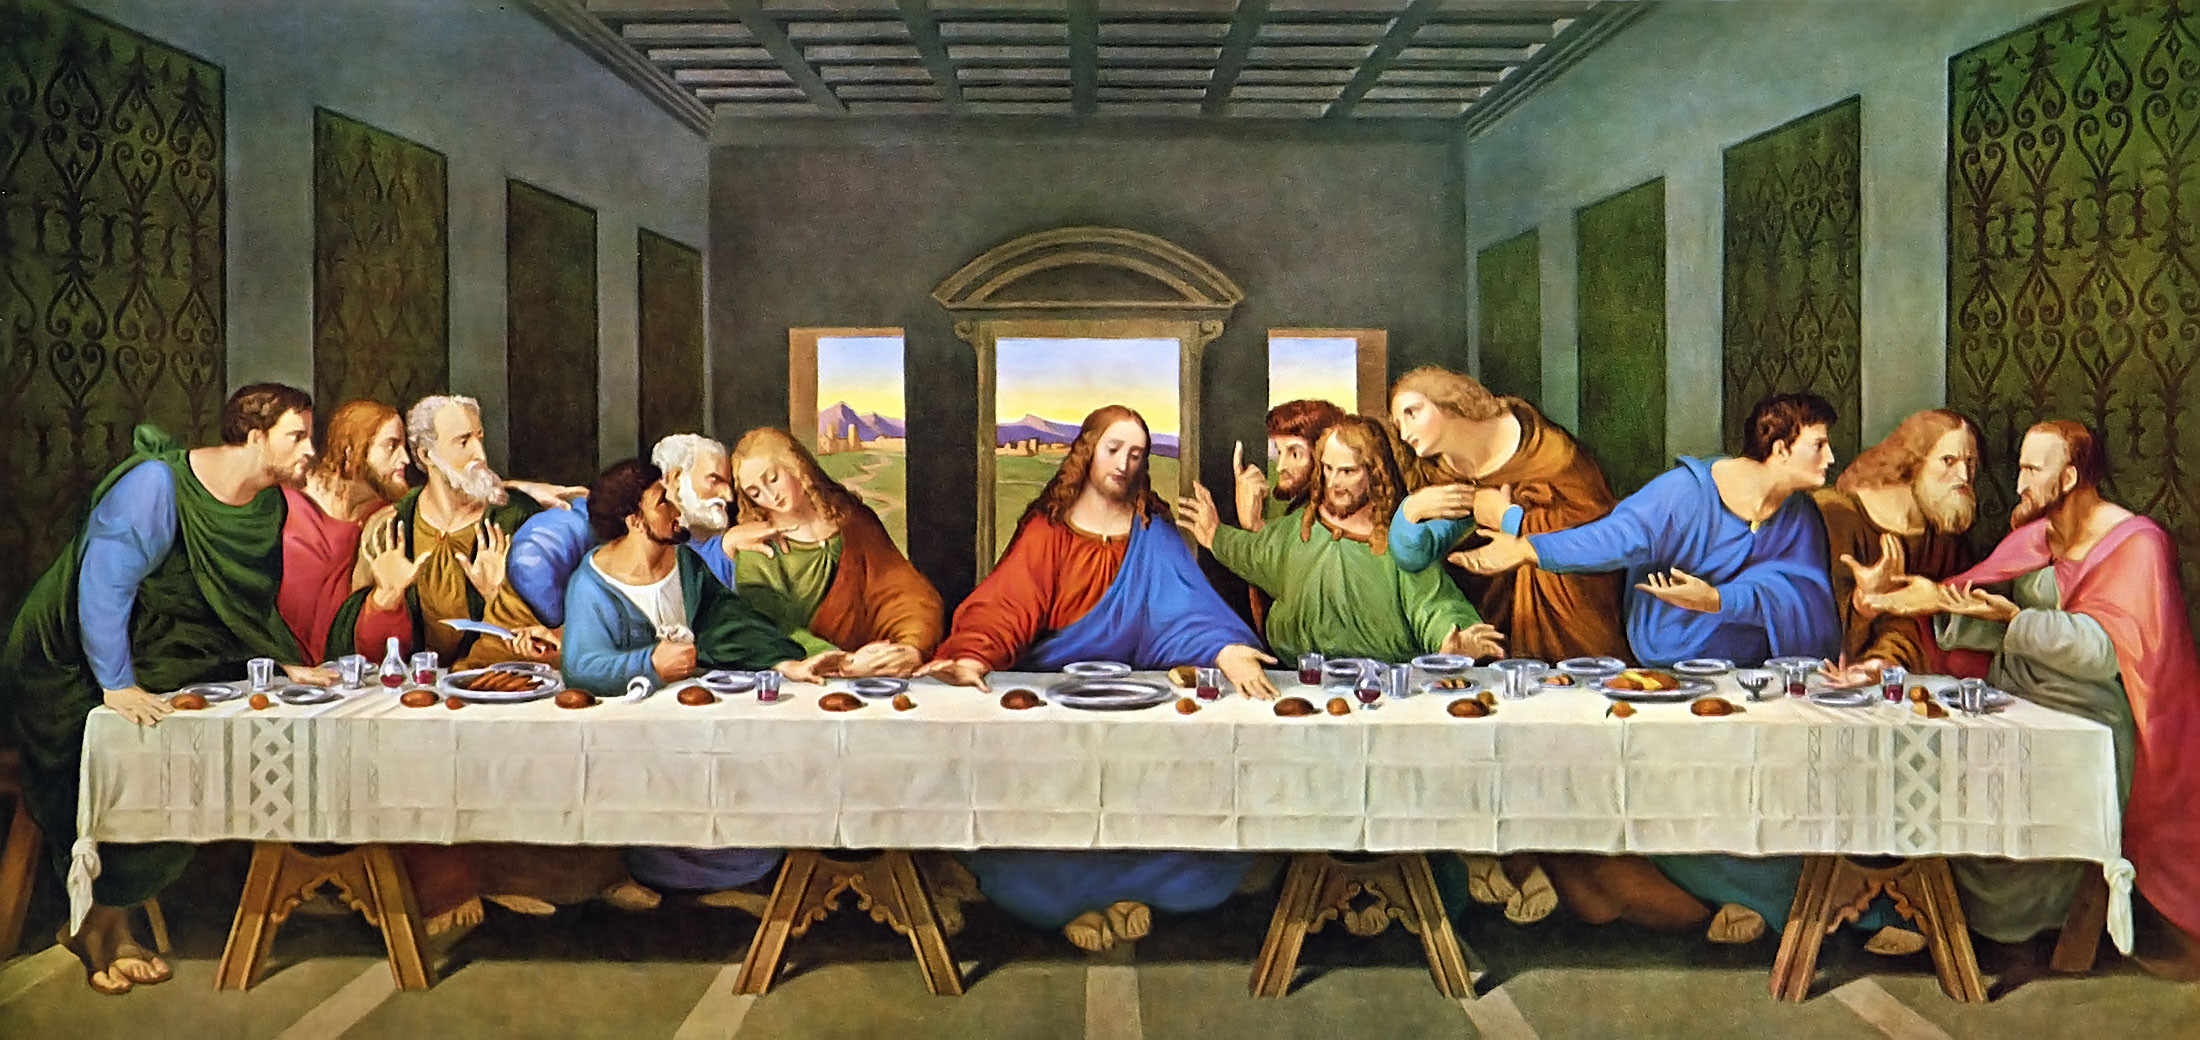 The-Last-Supper-Restored-Da-Vinci.jpg